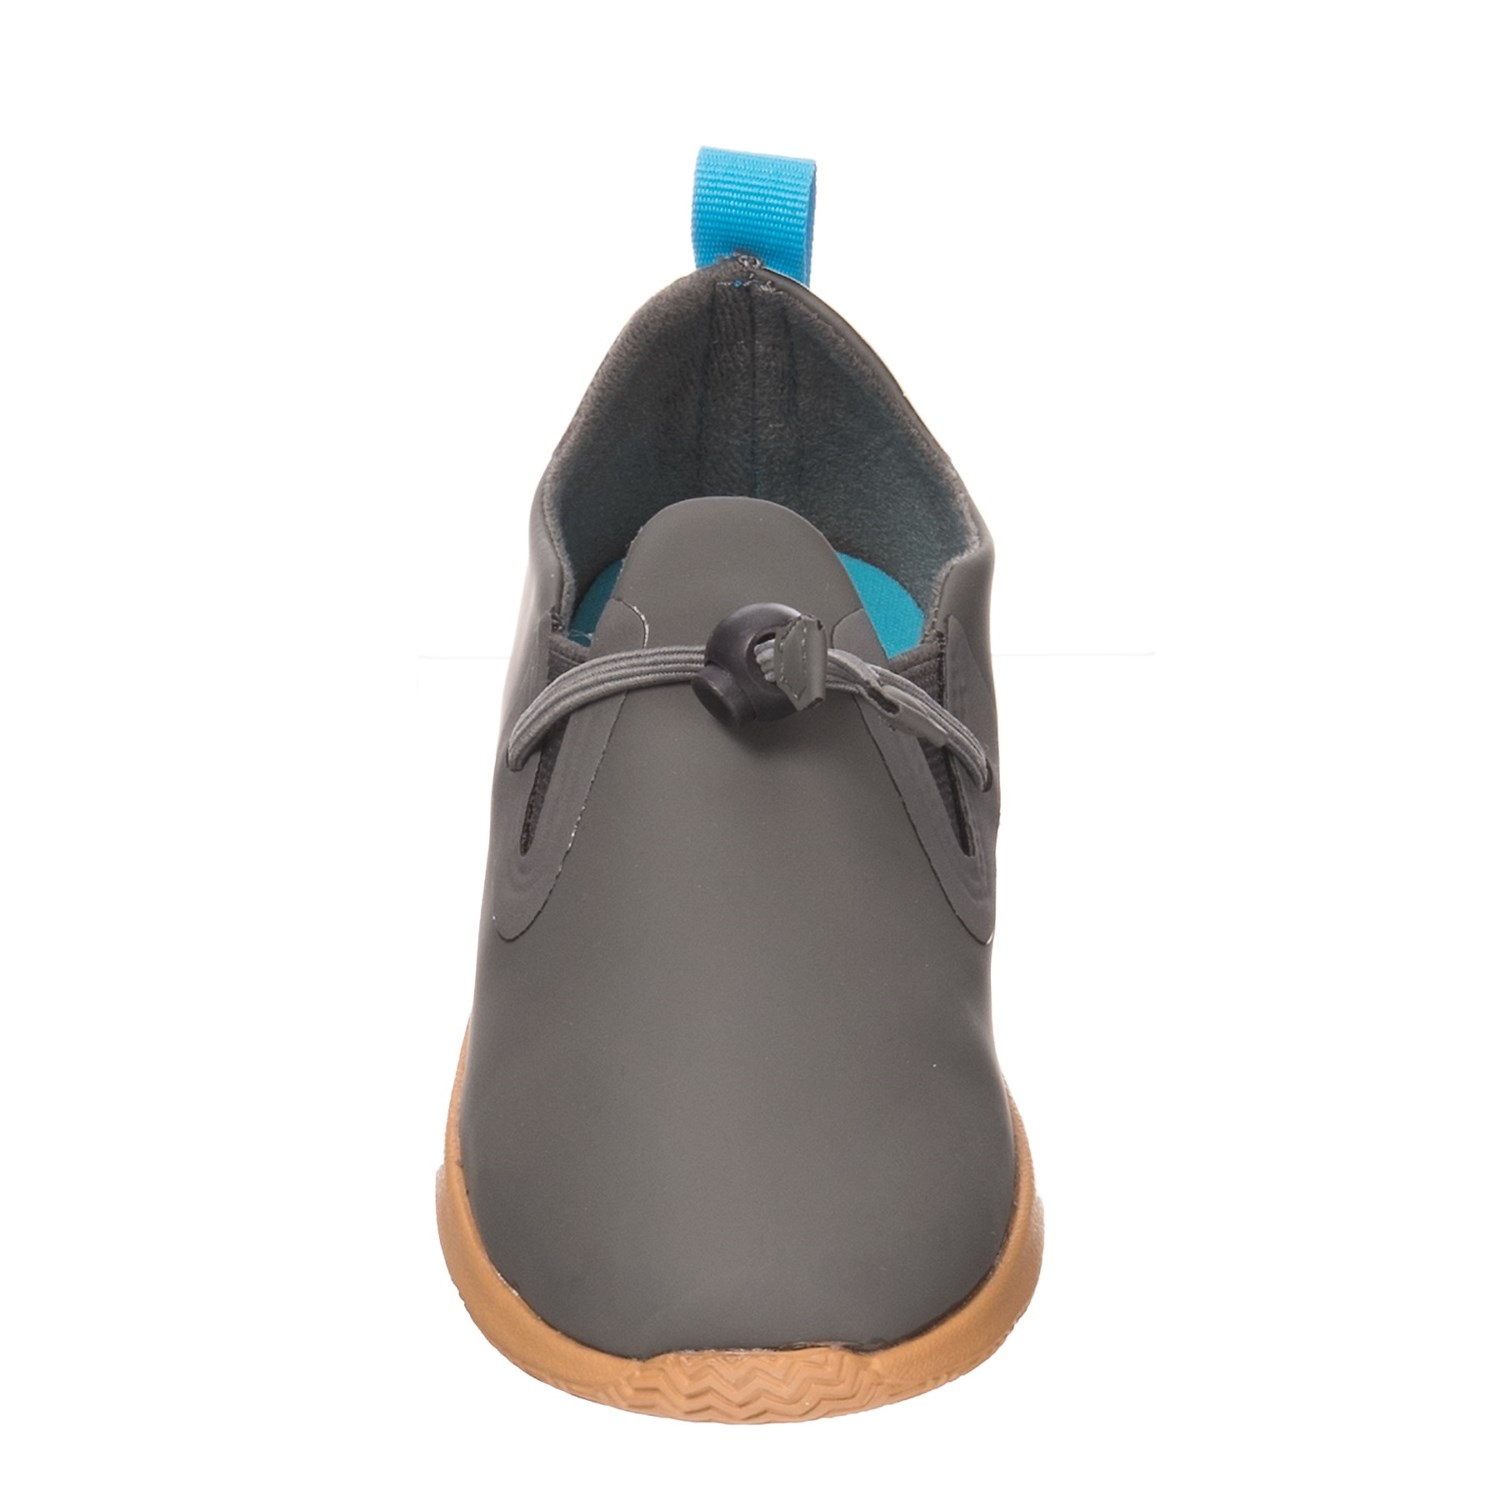 00b9d60d07d Native Shoes Apollo Moc Ct Sneakers For Toddler And Little Boys